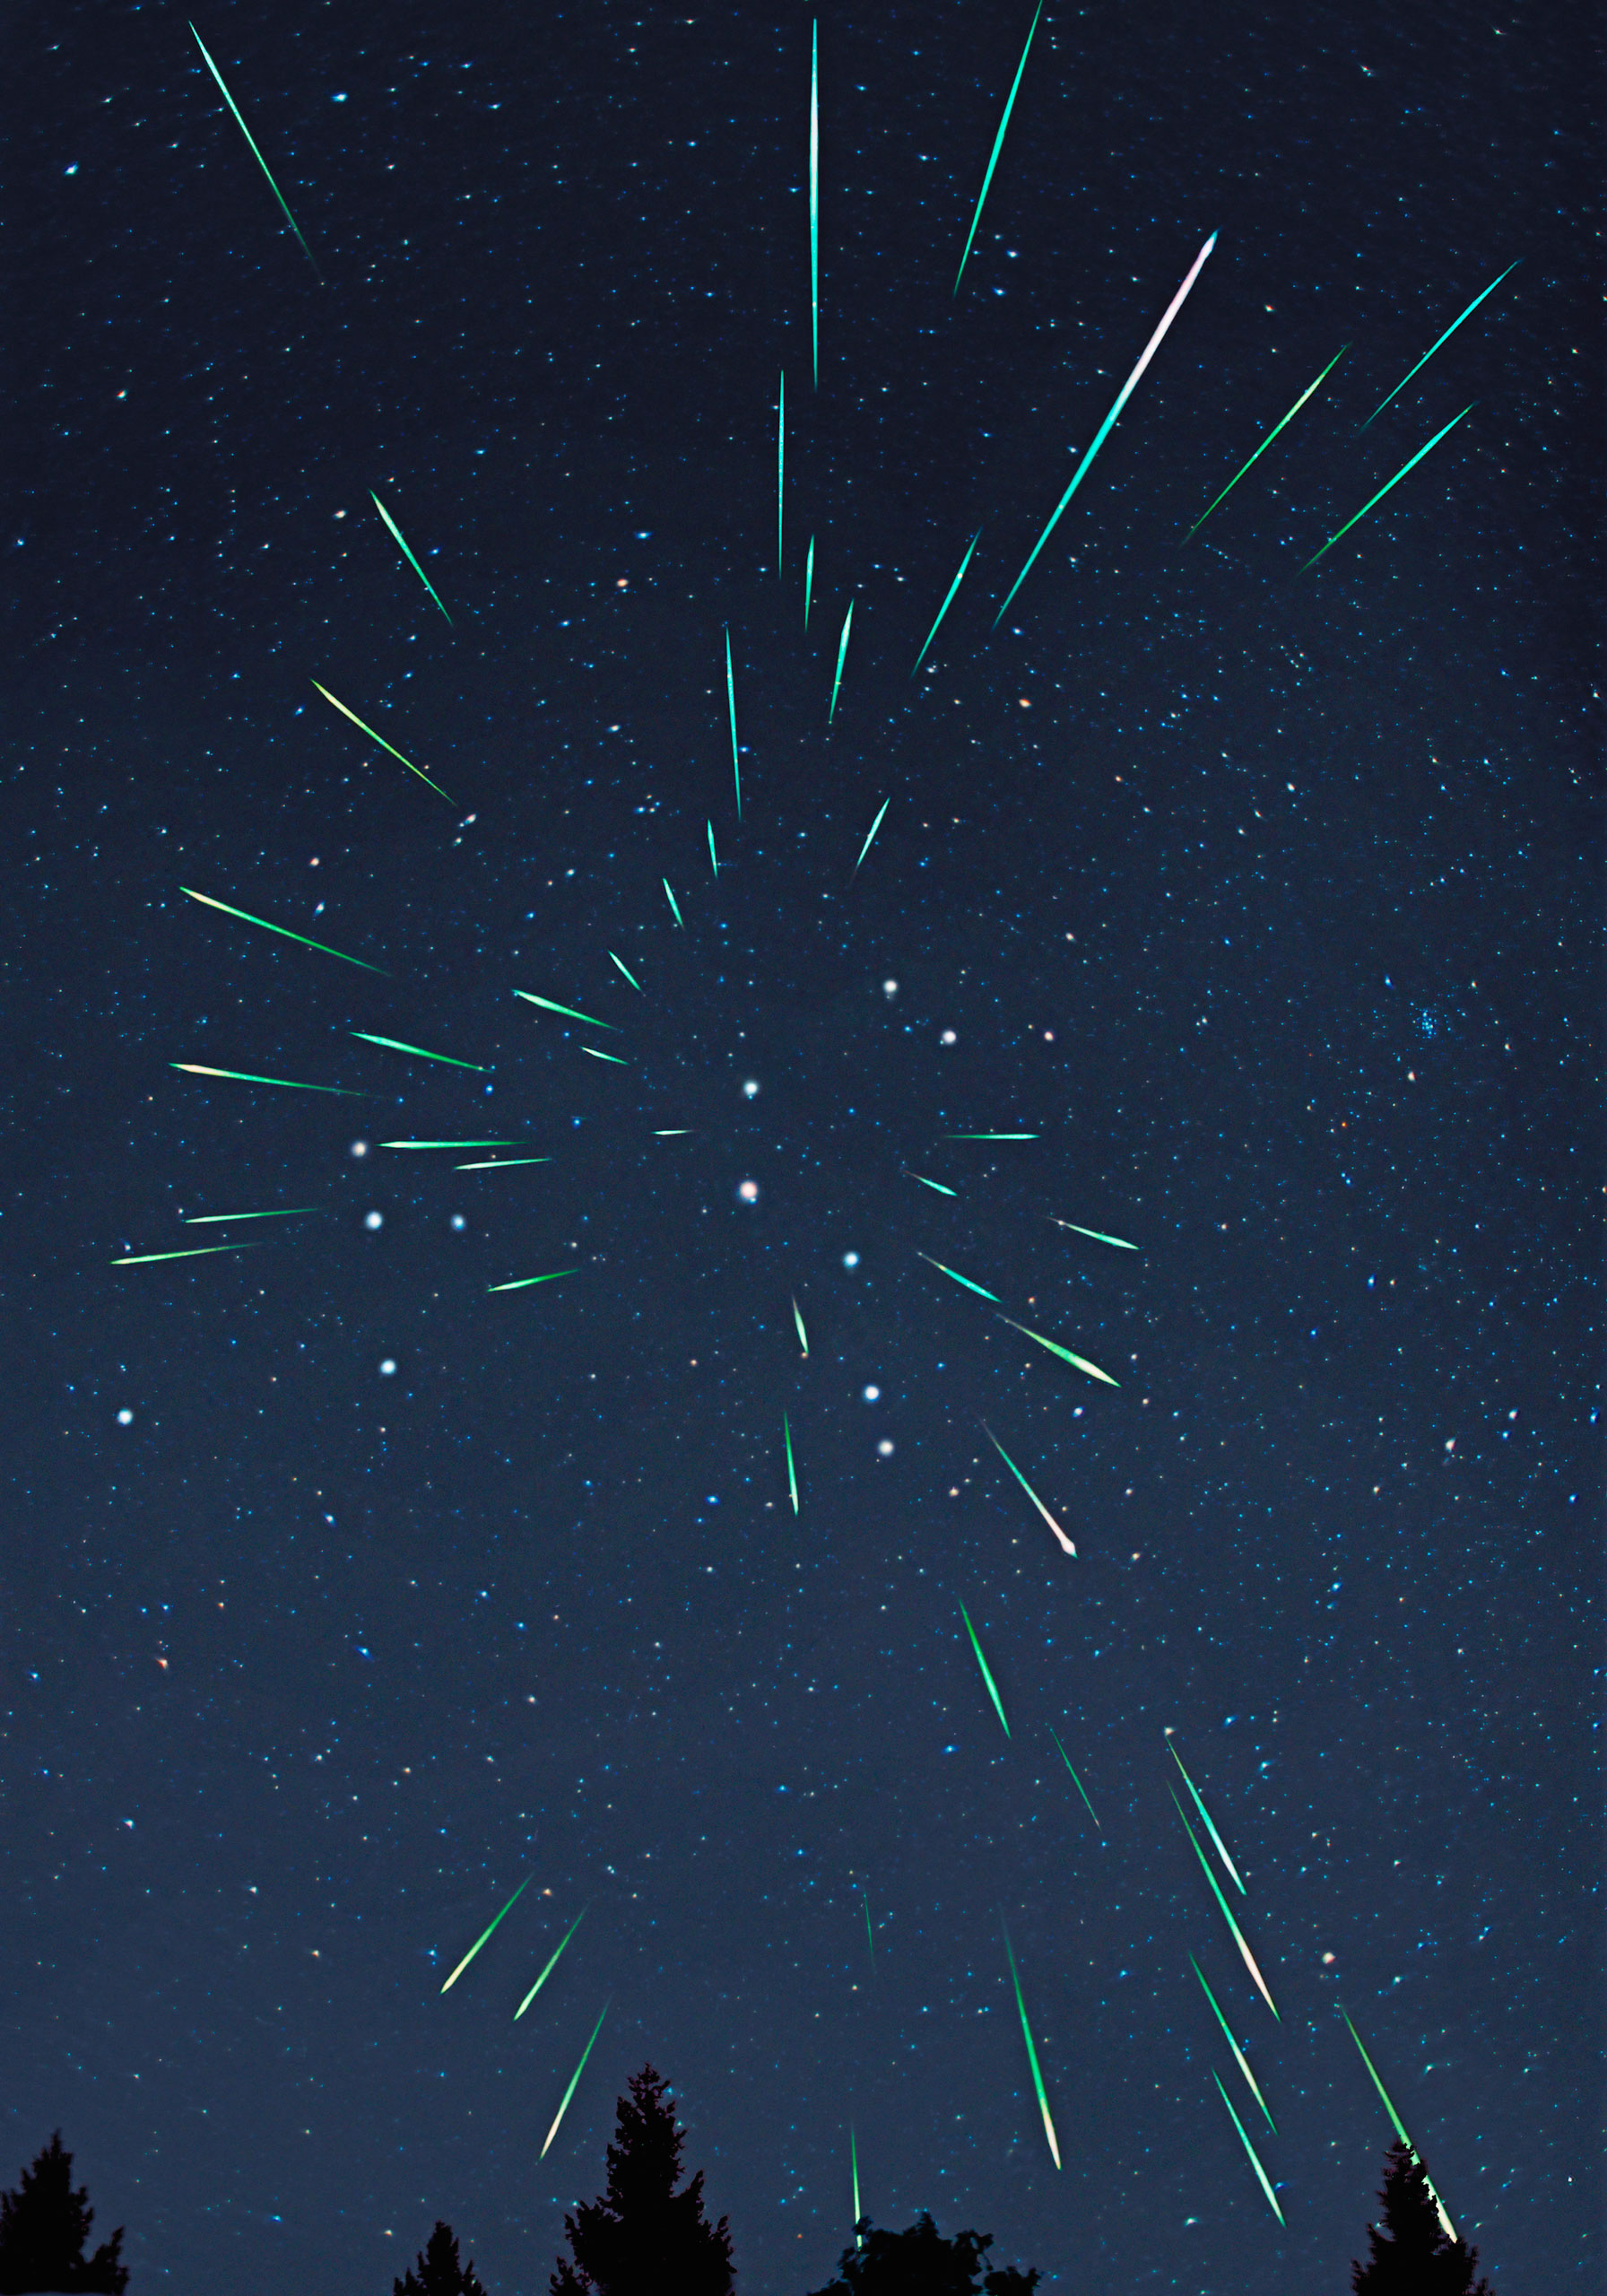 A multiple exposure of a Leonid meteor shower.